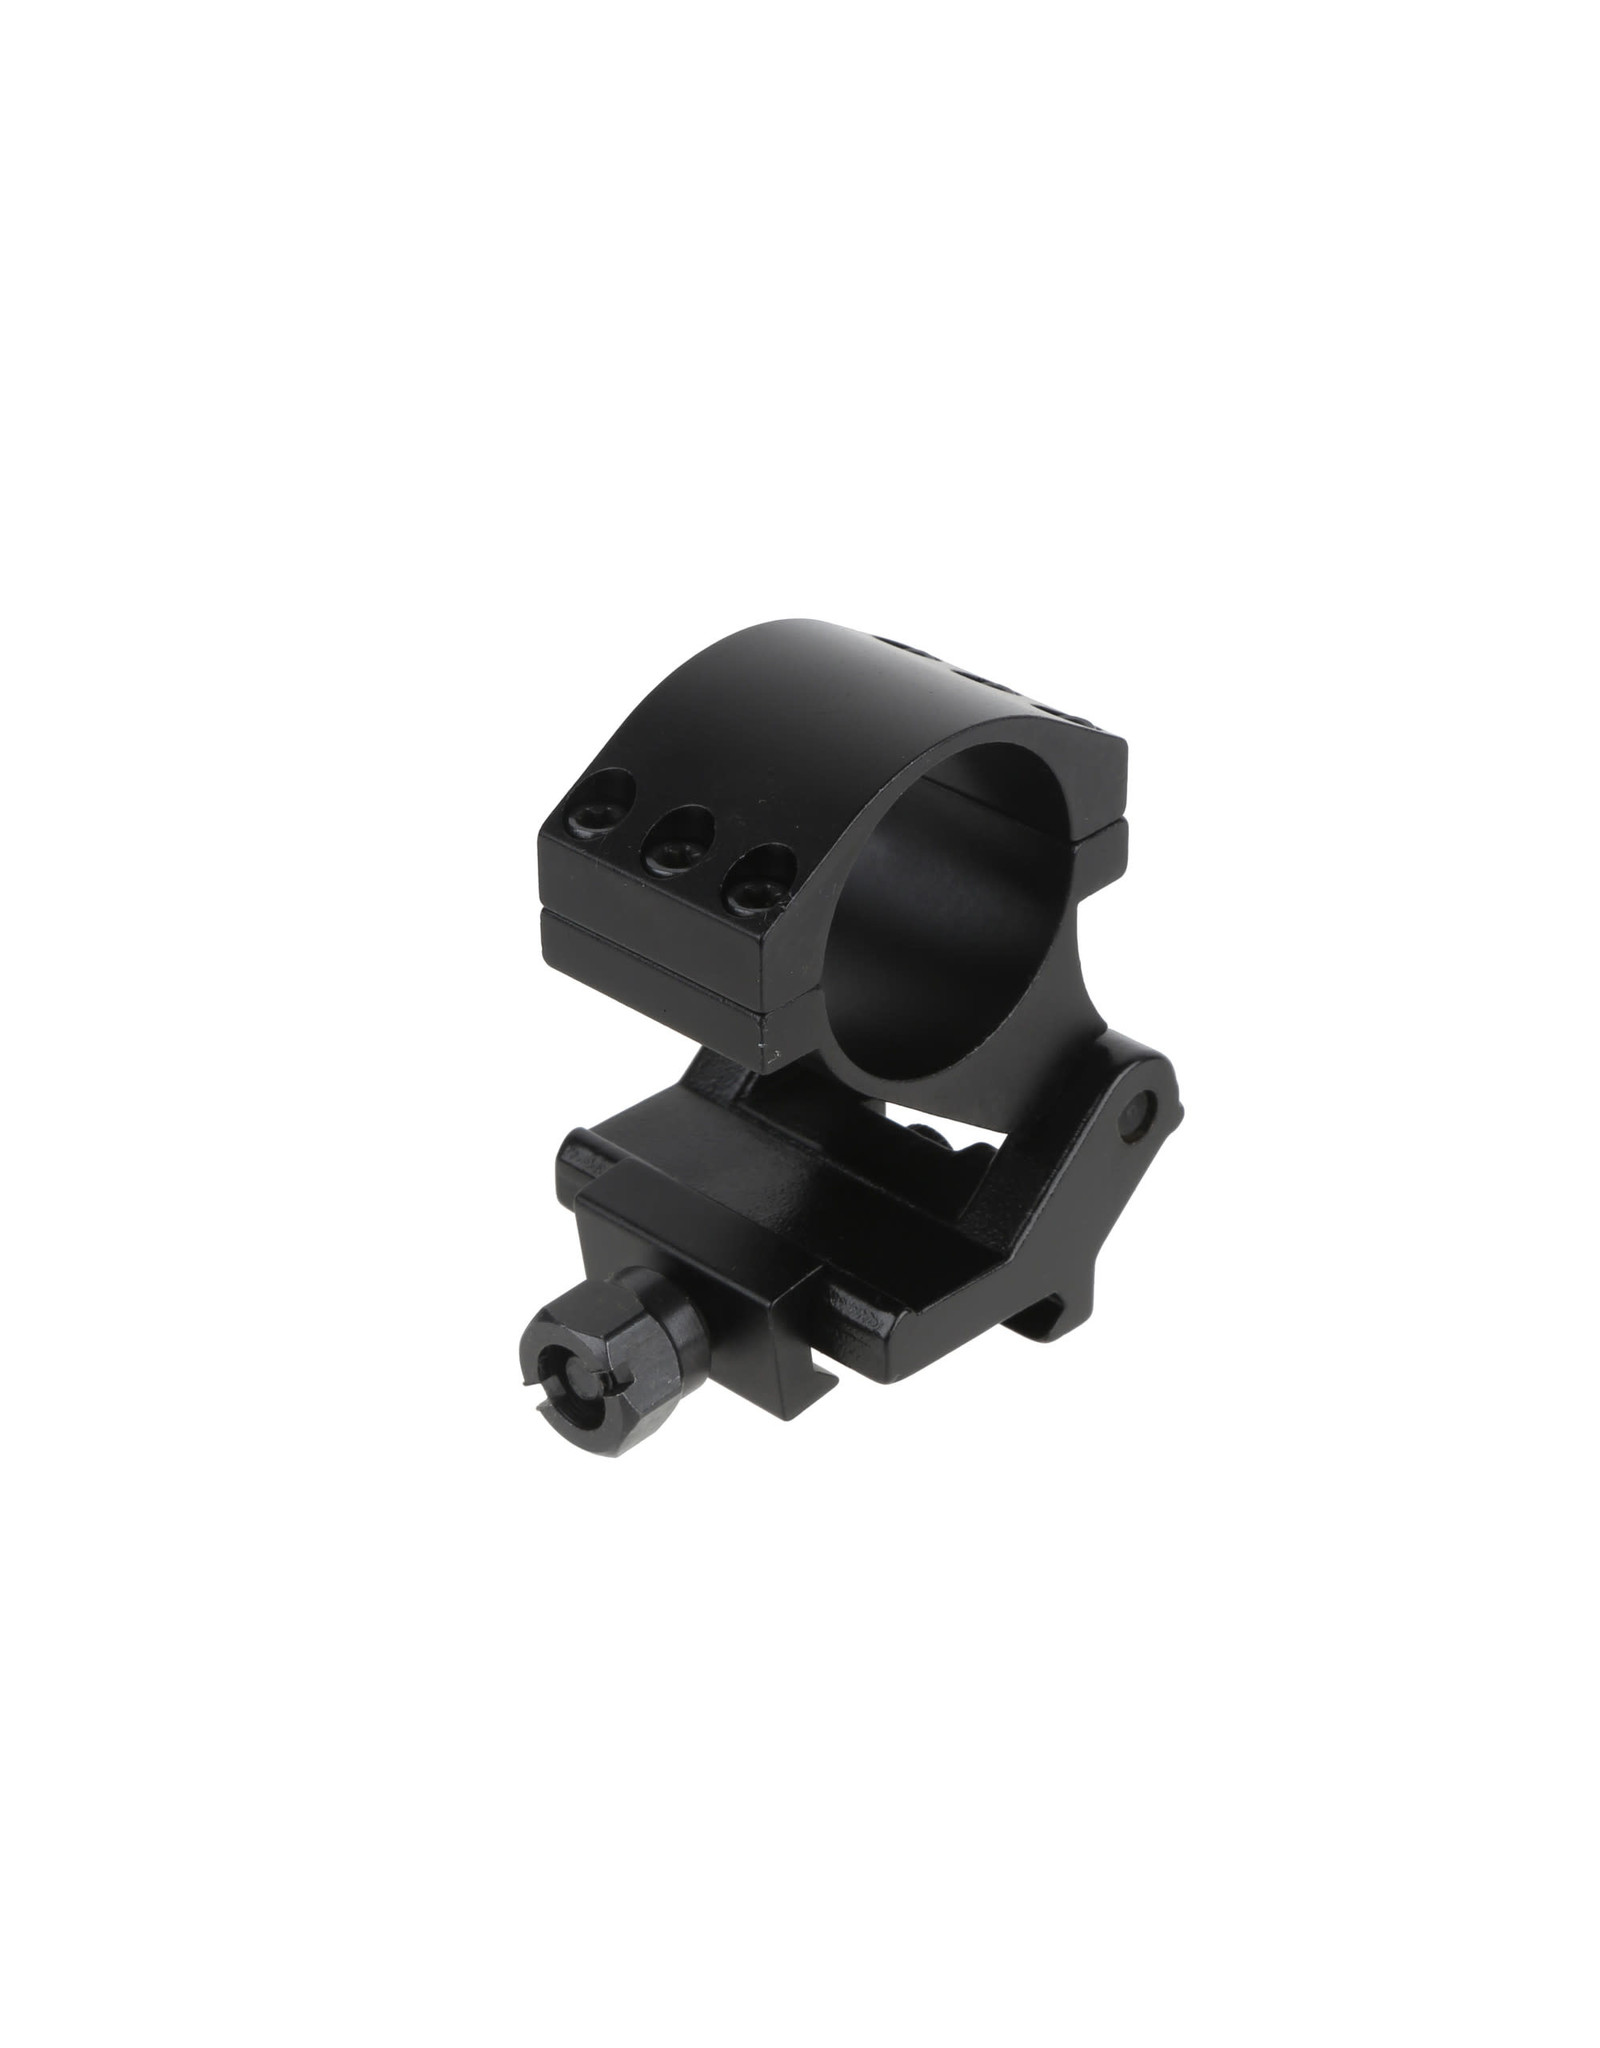 Primary Arms Primary Arms Flip To Side Magnifier Mount - Standard Height